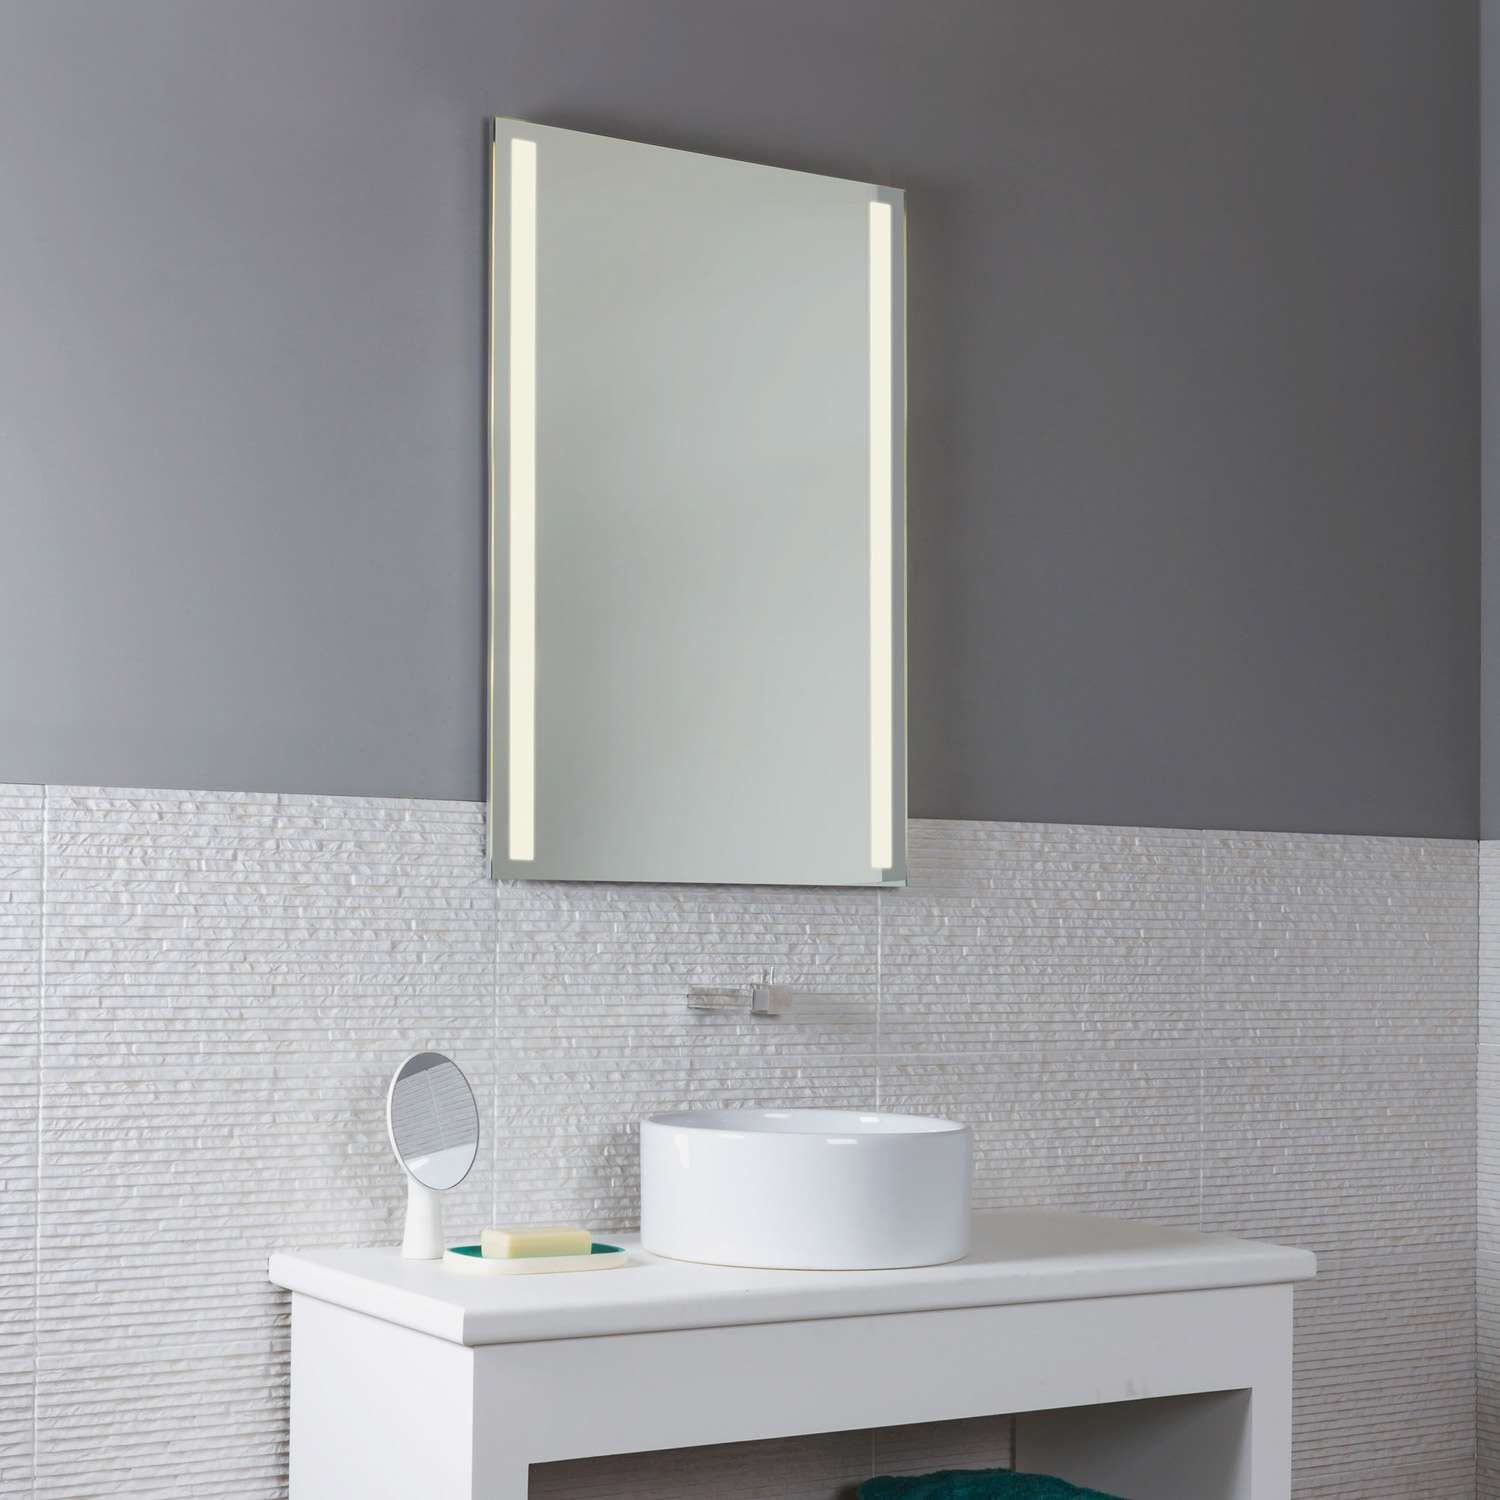 Why You Should Choose An Illuminated Mirror YLighting Blog Led